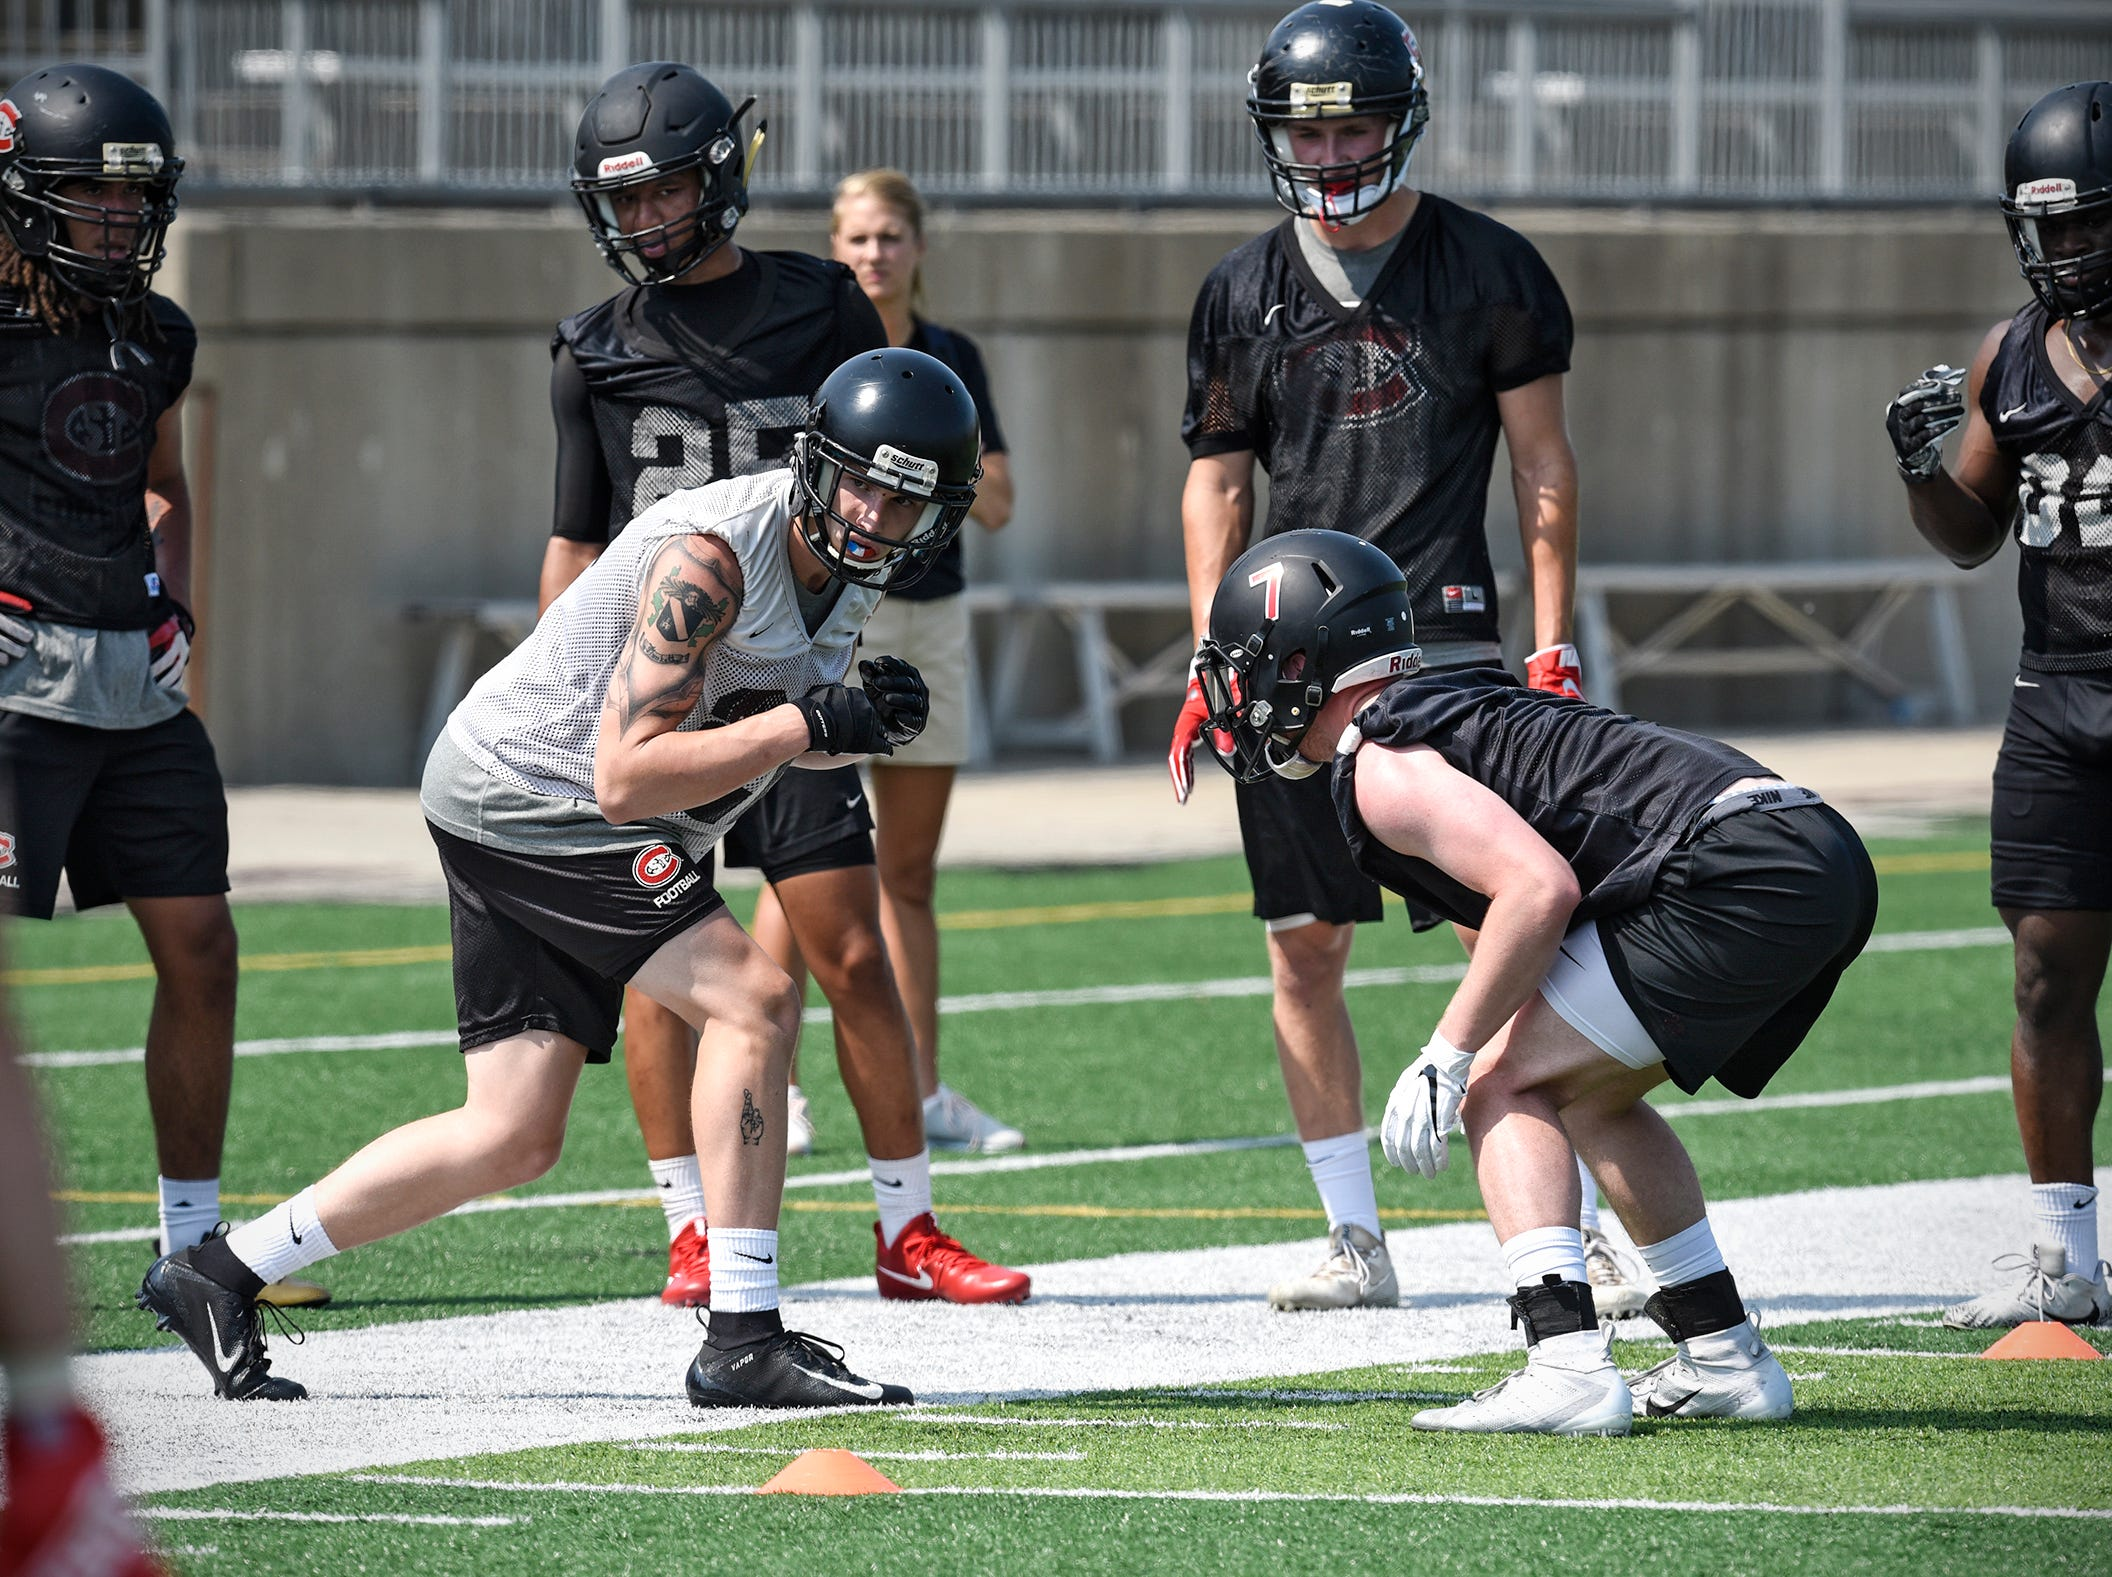 Players run through a drill during practice Wednesday, Aug. 8, at Husky Stadium in St. Cloud.